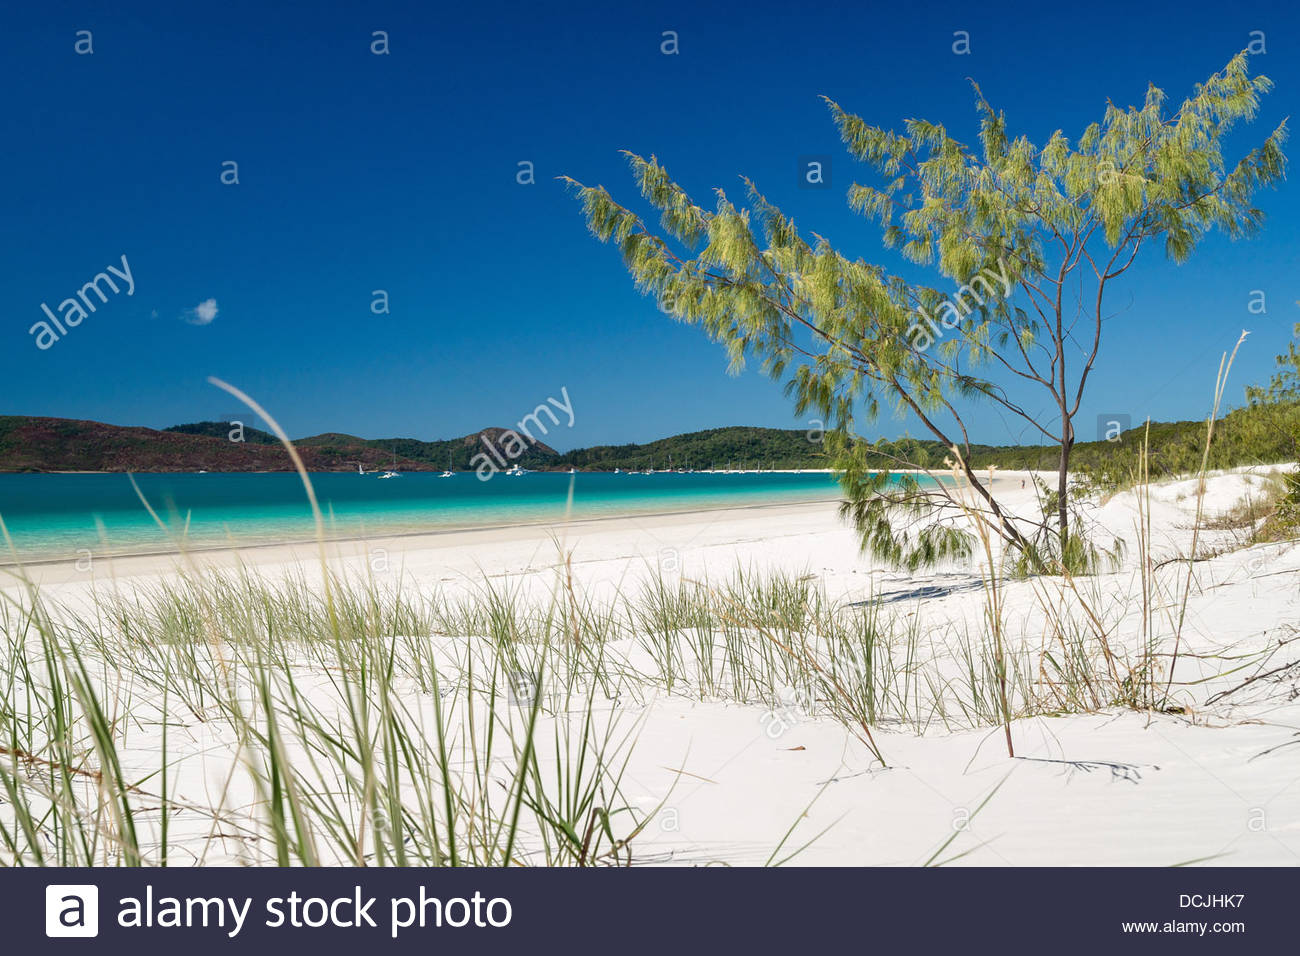 Whitehaven beach on Whitsunday Island - Whitsundays - Australia - Stock Image